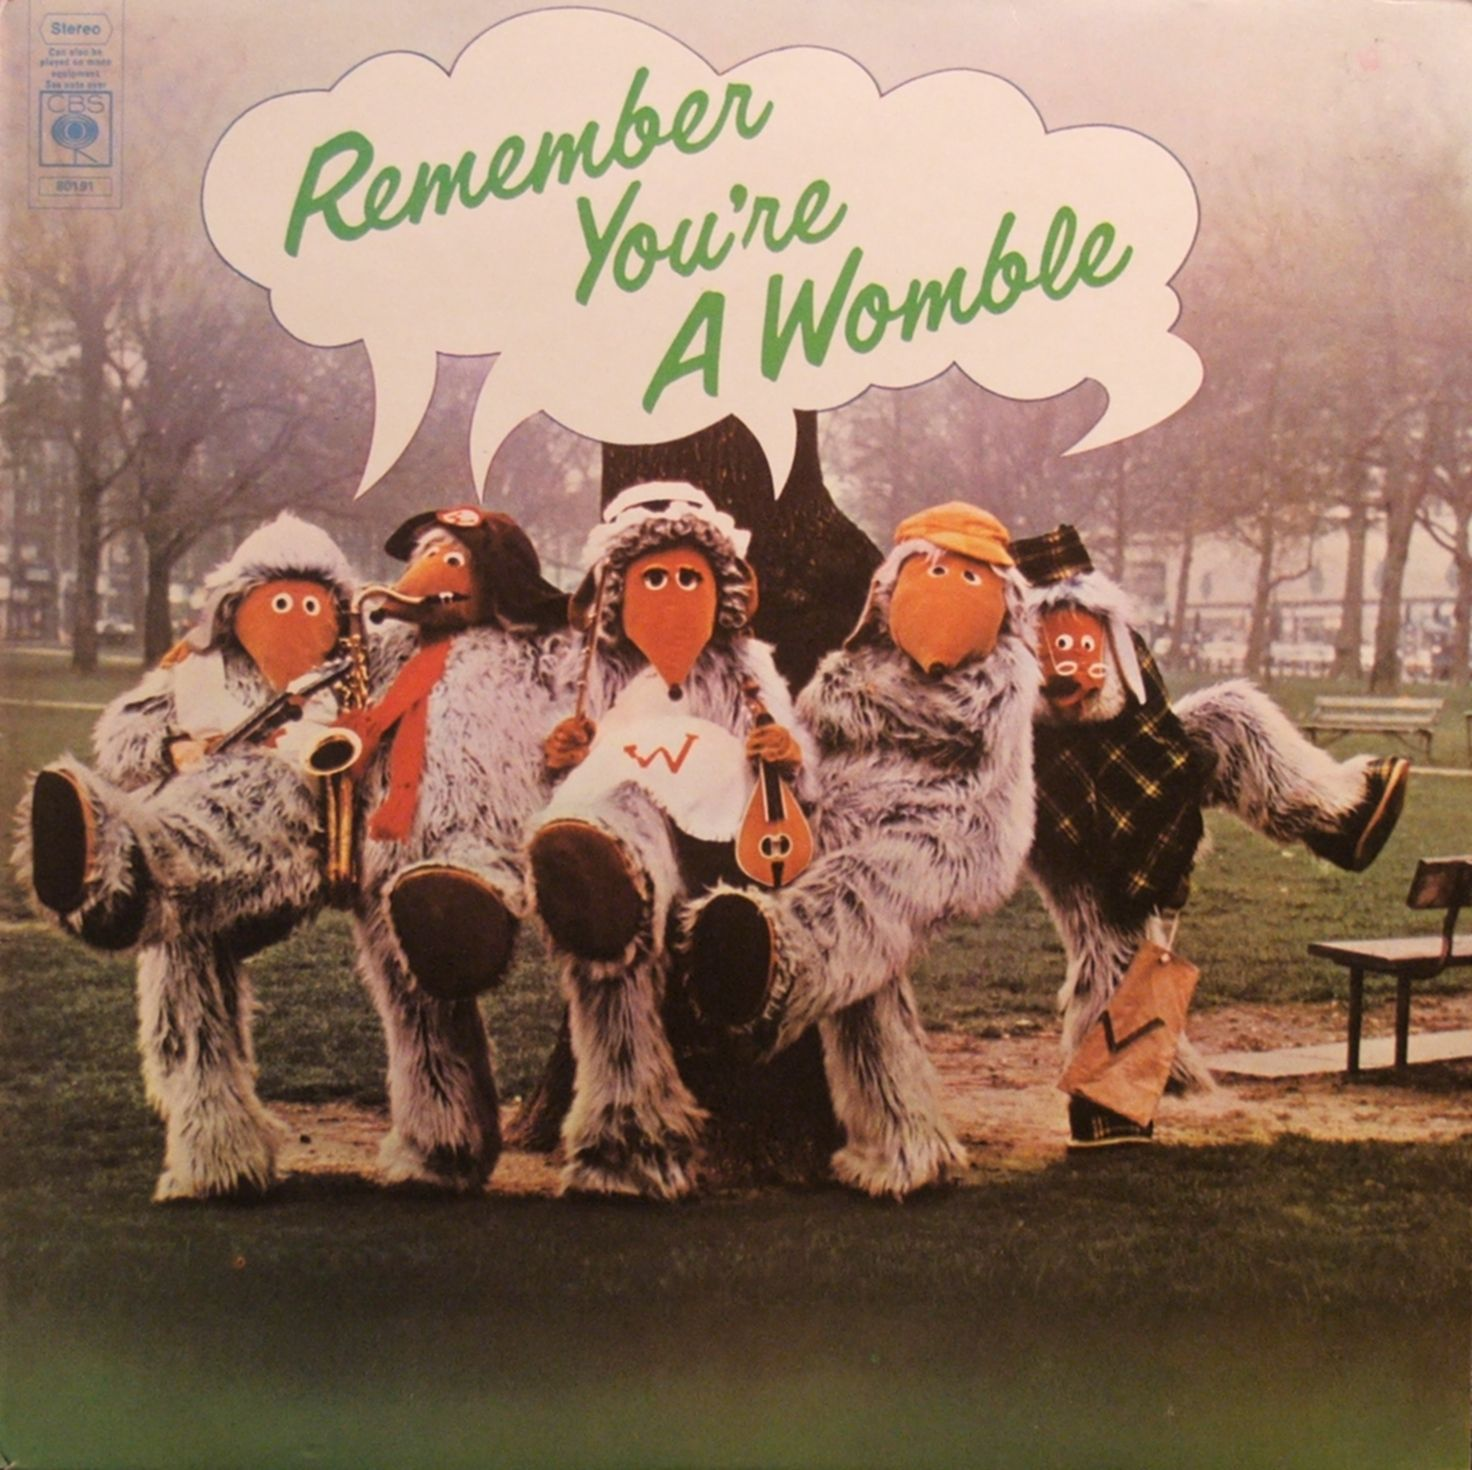 The Wombles. Went to see them play in Yate and got picked up by Orinoco. Joy!